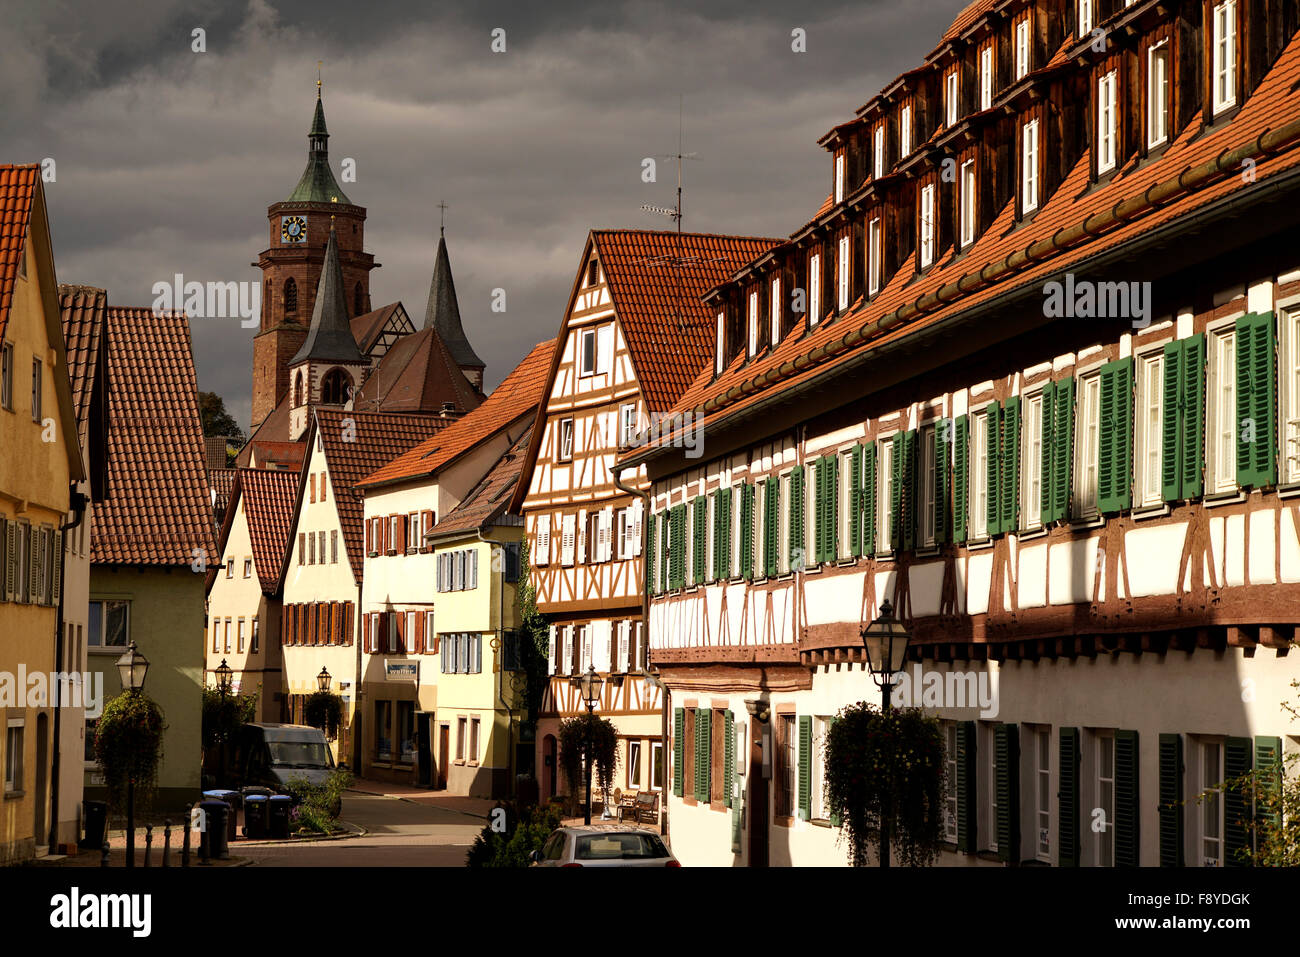 Cityscape with church St. Peter and Paul in Weil der Stadt, Boeblingen, Baden-Wuerttemberg, Germany - Stock Image